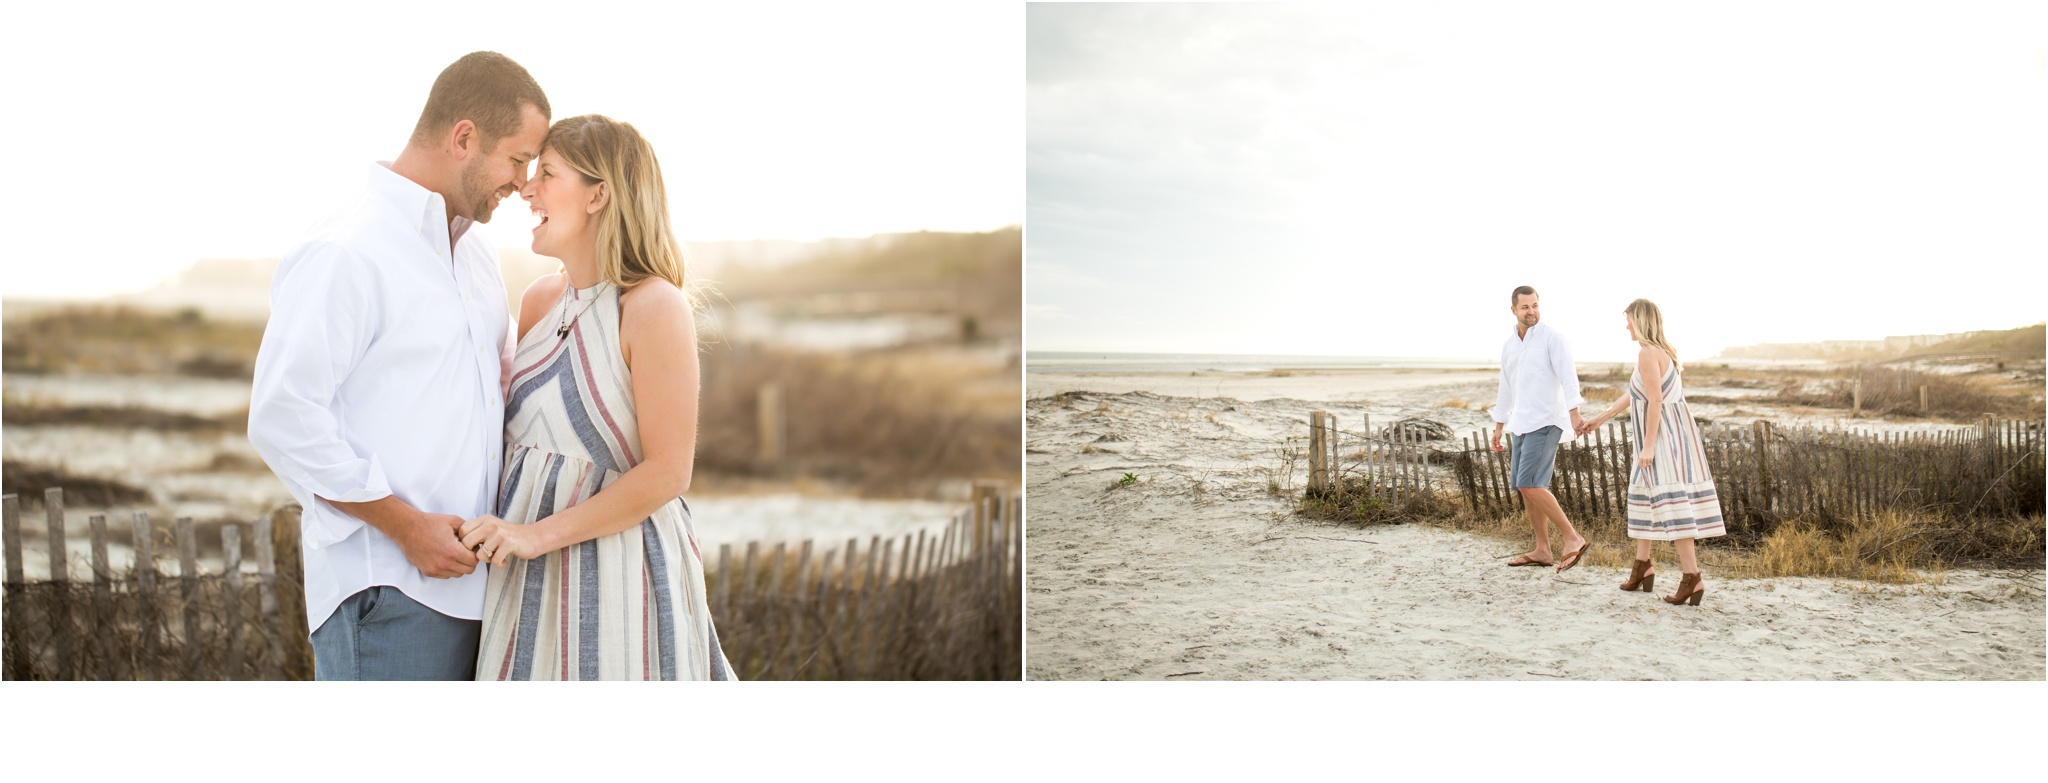 Rainey_Gregg_Photography_St._Simons_Island_Georgia_California_Wedding_Portrait_Photography_1414.jpg